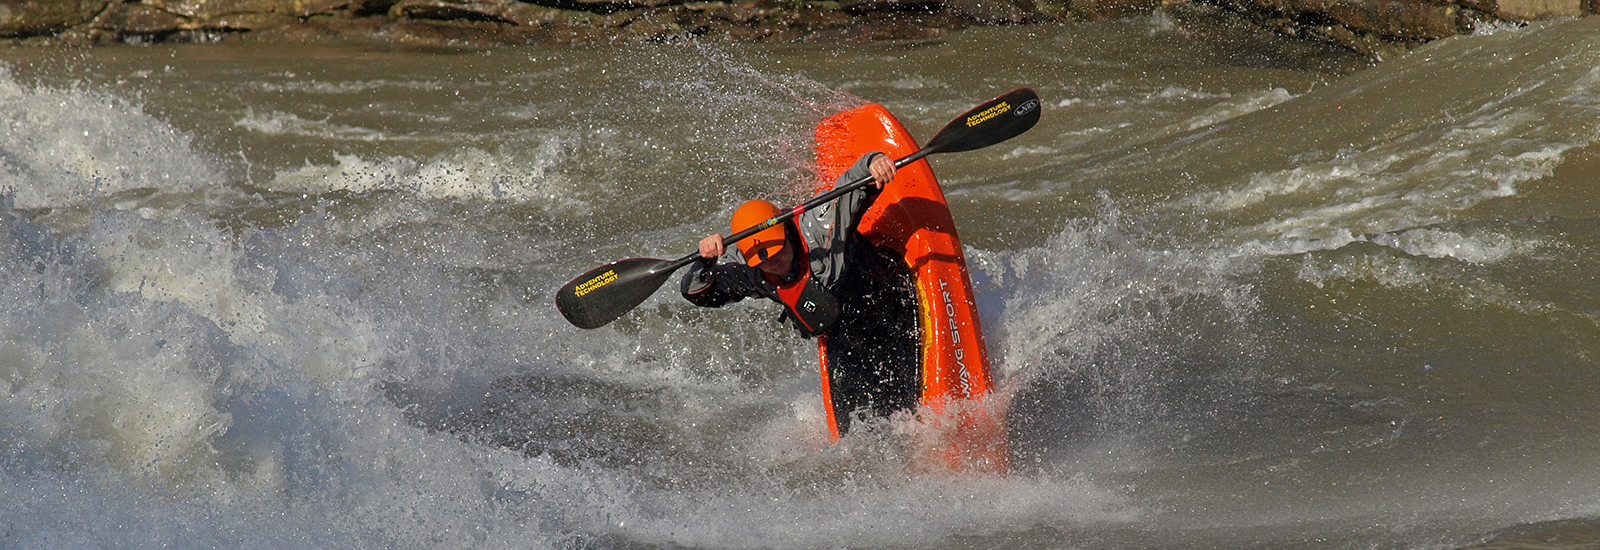 kayaker using project x in rapids